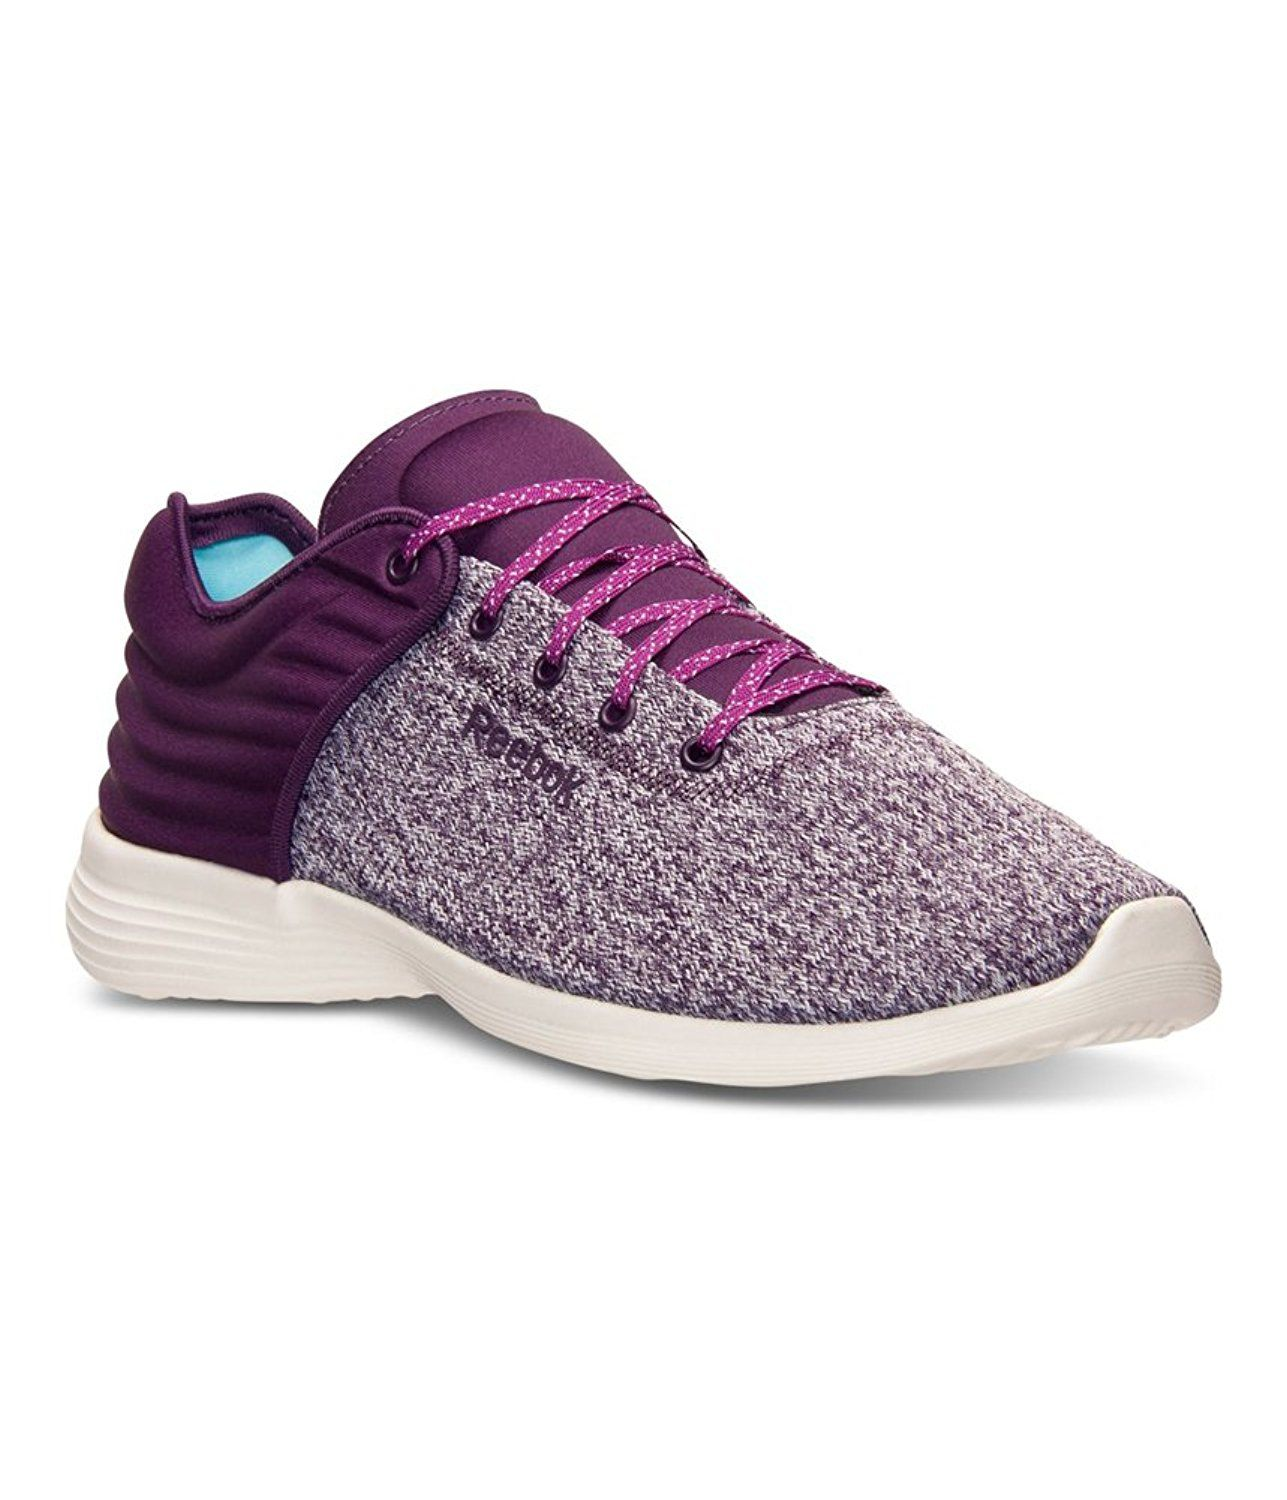 487ac124a39 Reebok Womens Skyscape Fuse Sneakers   You can get more details by clicking  on the image